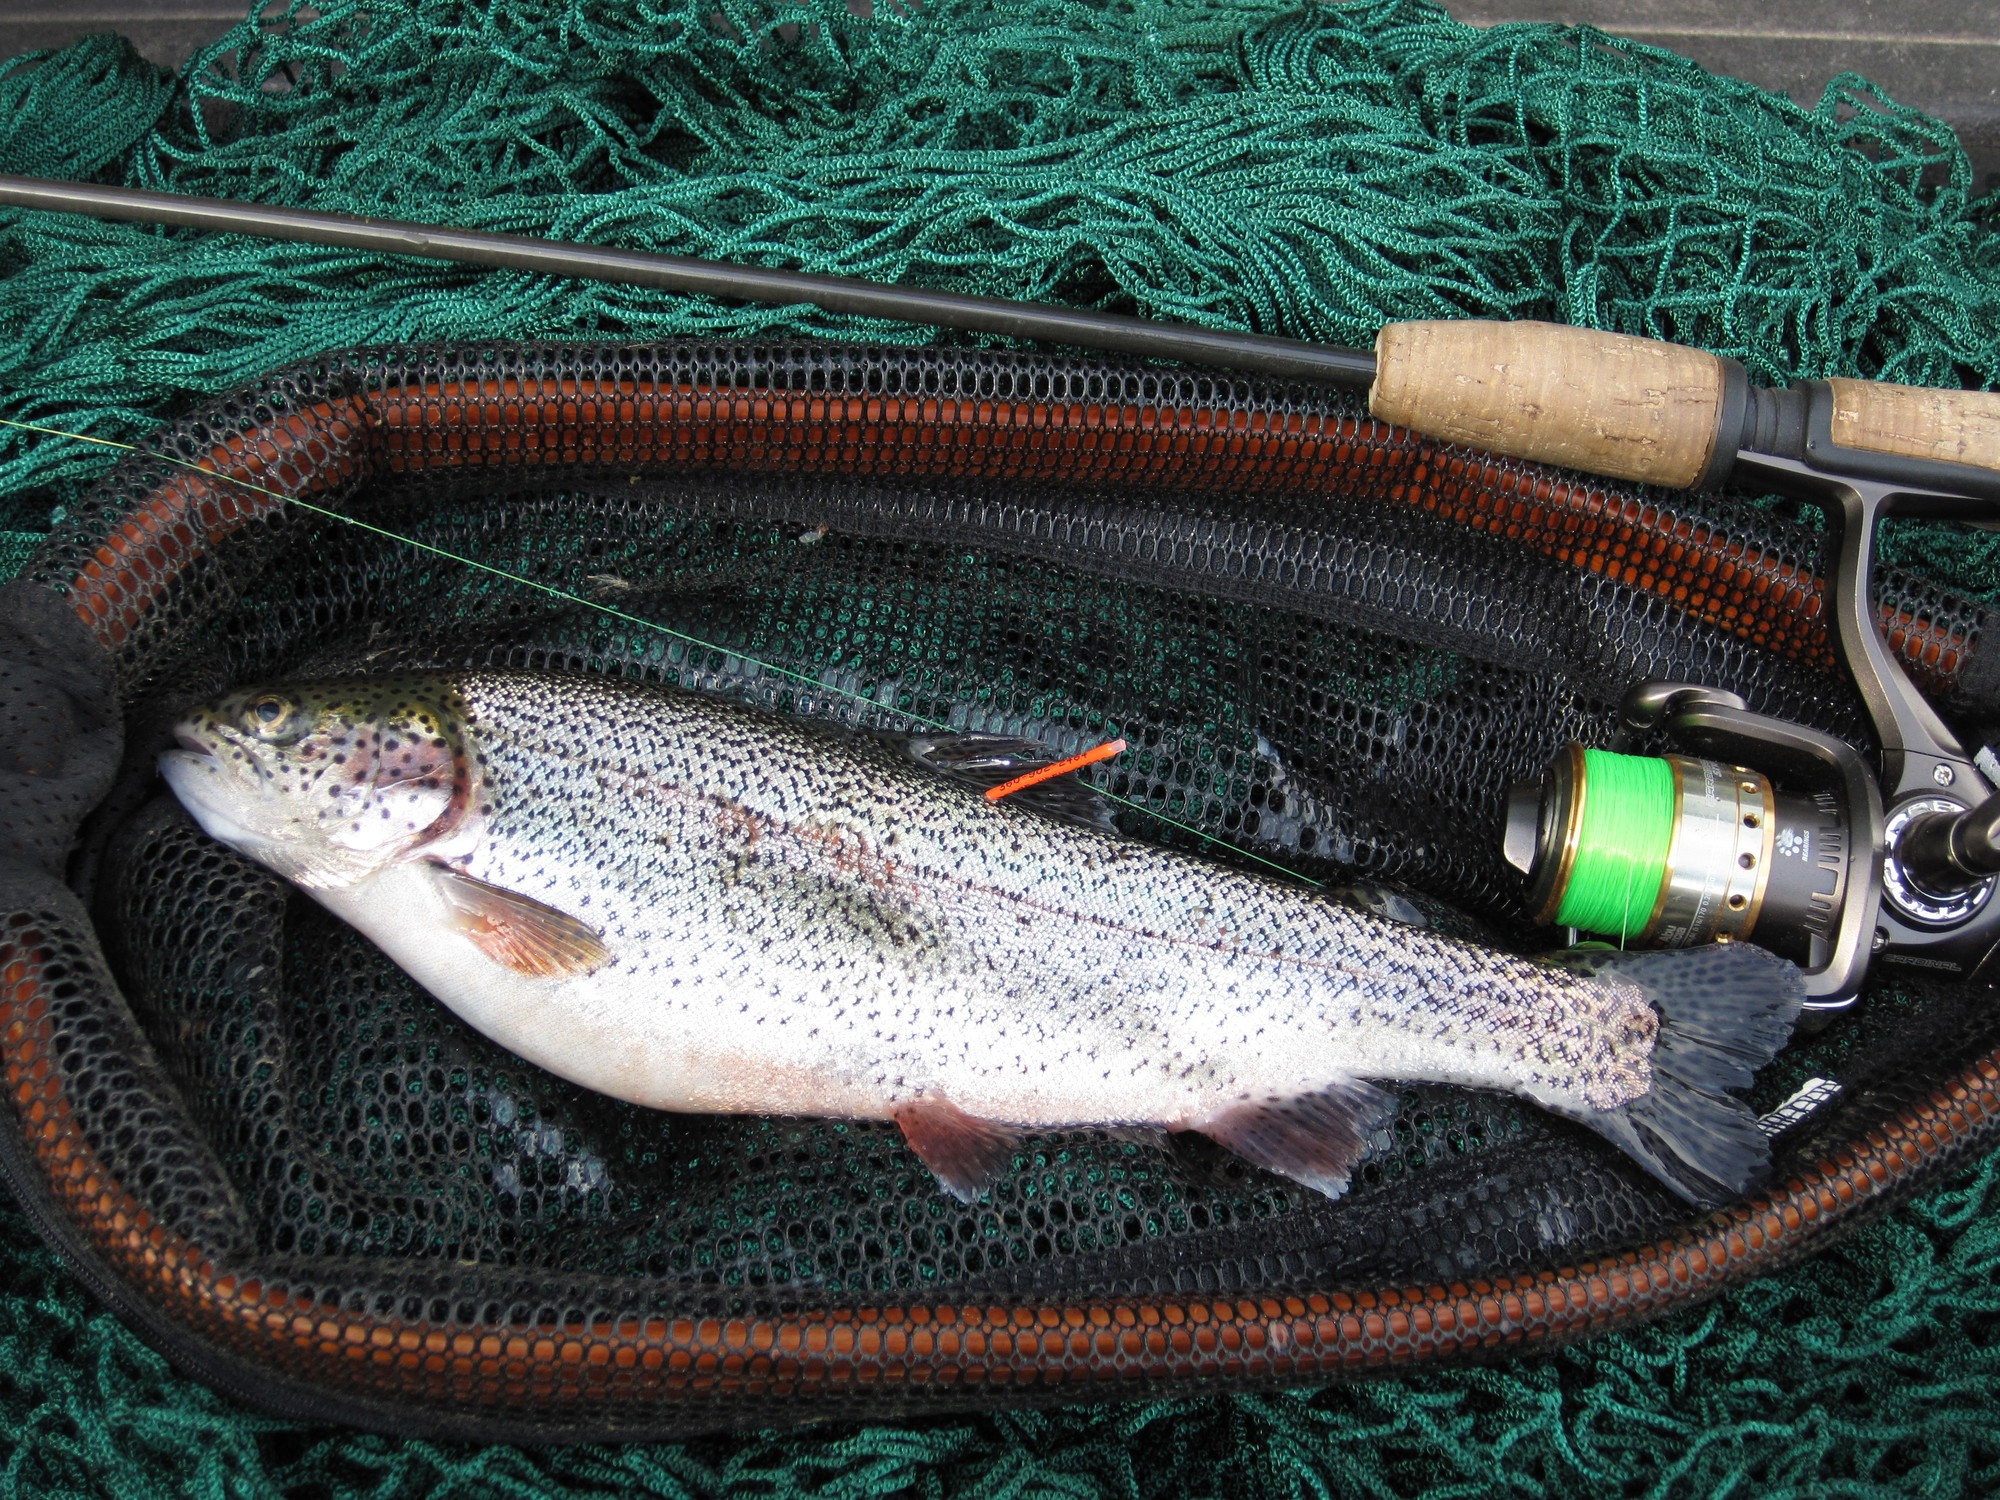 A tagged prize trout in the 2021 Trout Derby in a net after being caught.